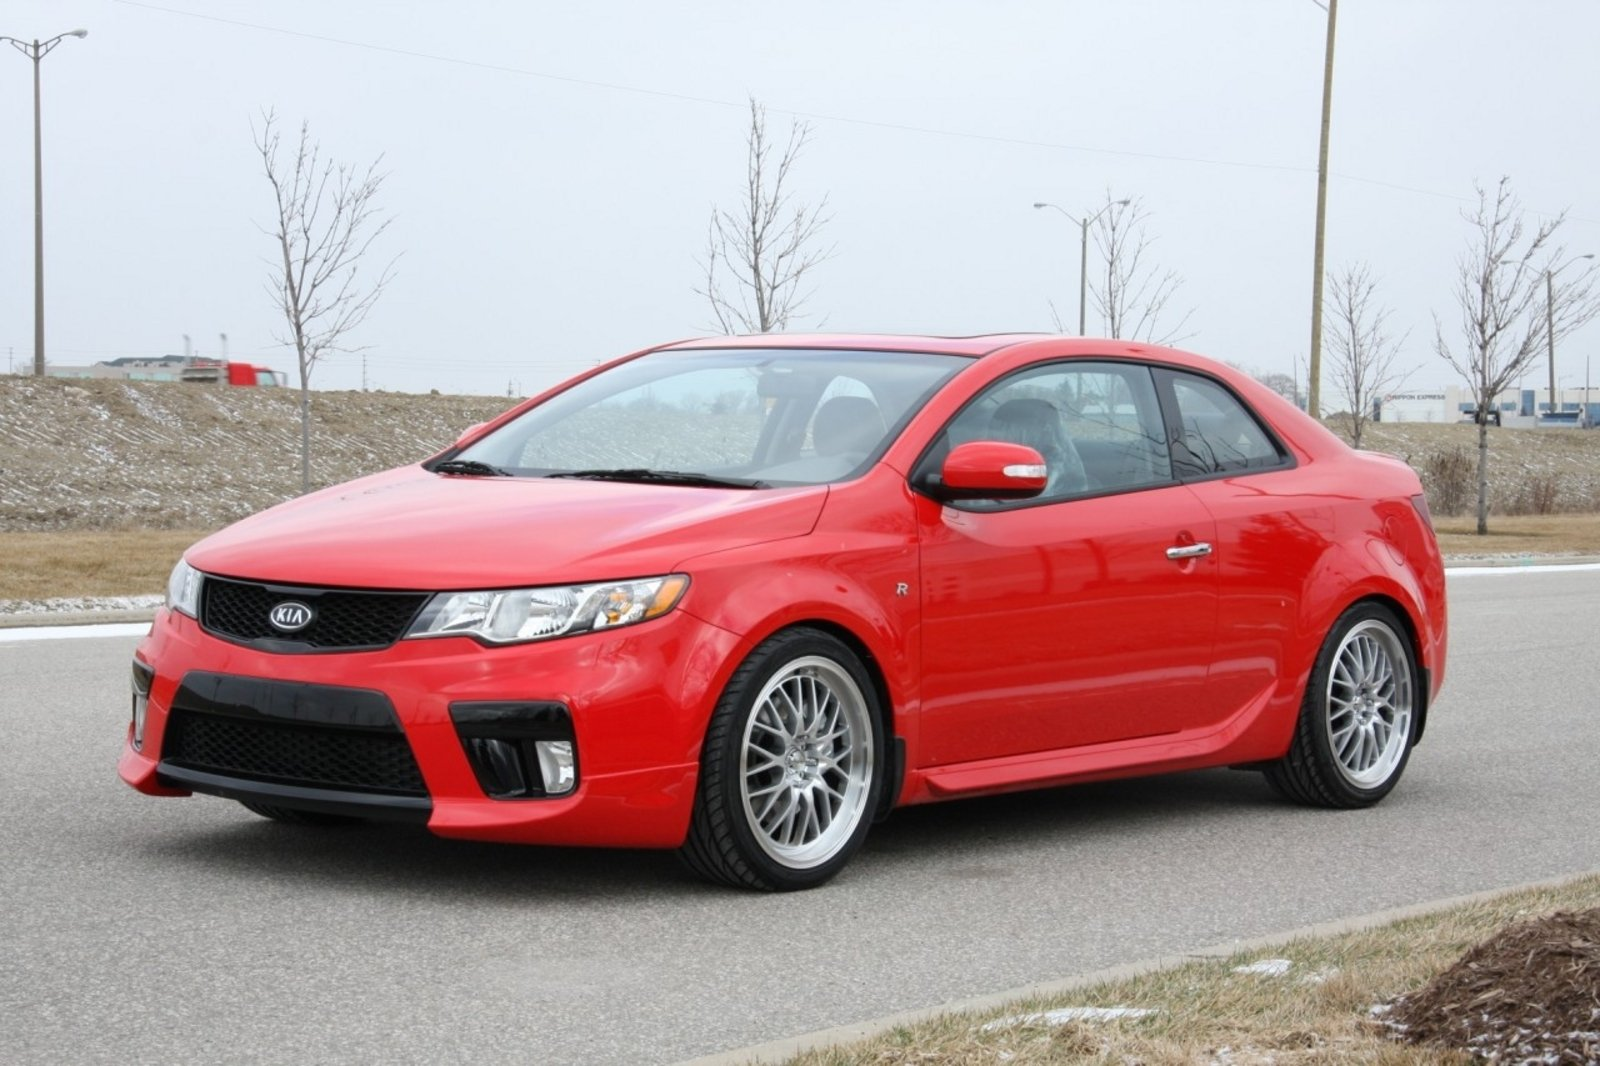 2010 Kia Forte Koup R-package Review